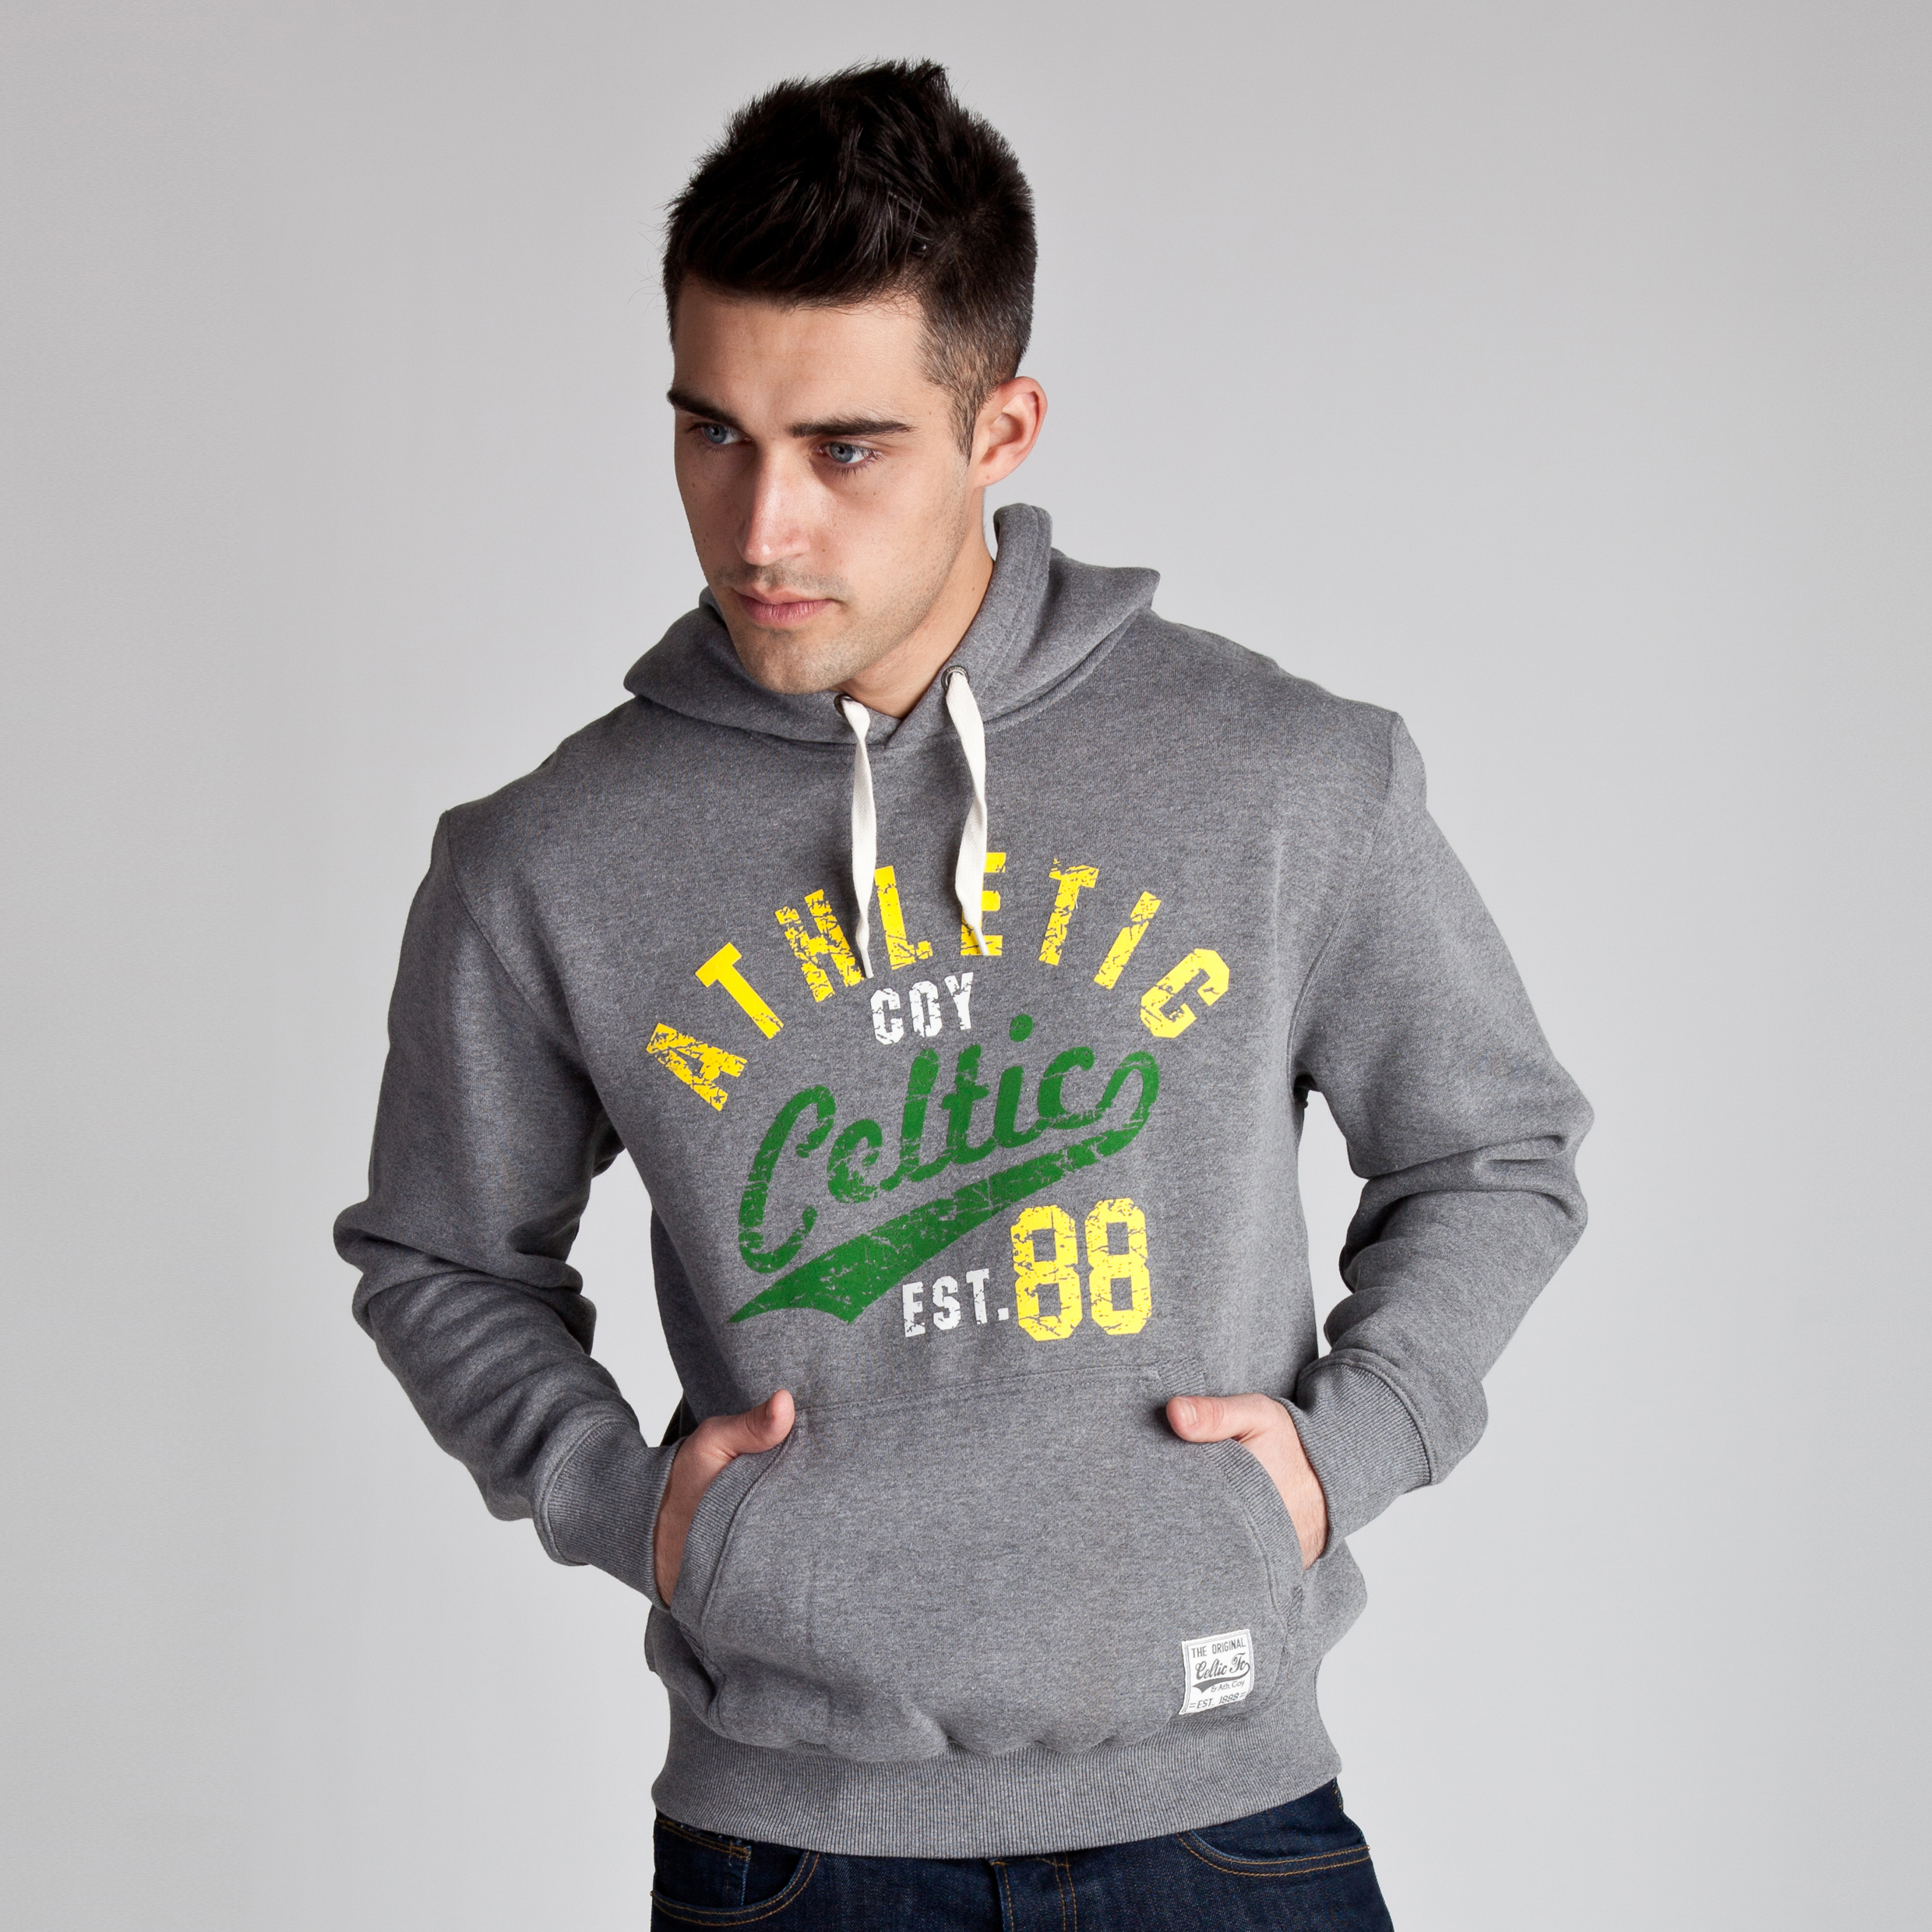 Celtic Heritage Athletic Est 88 Hoody - Vintage Marl